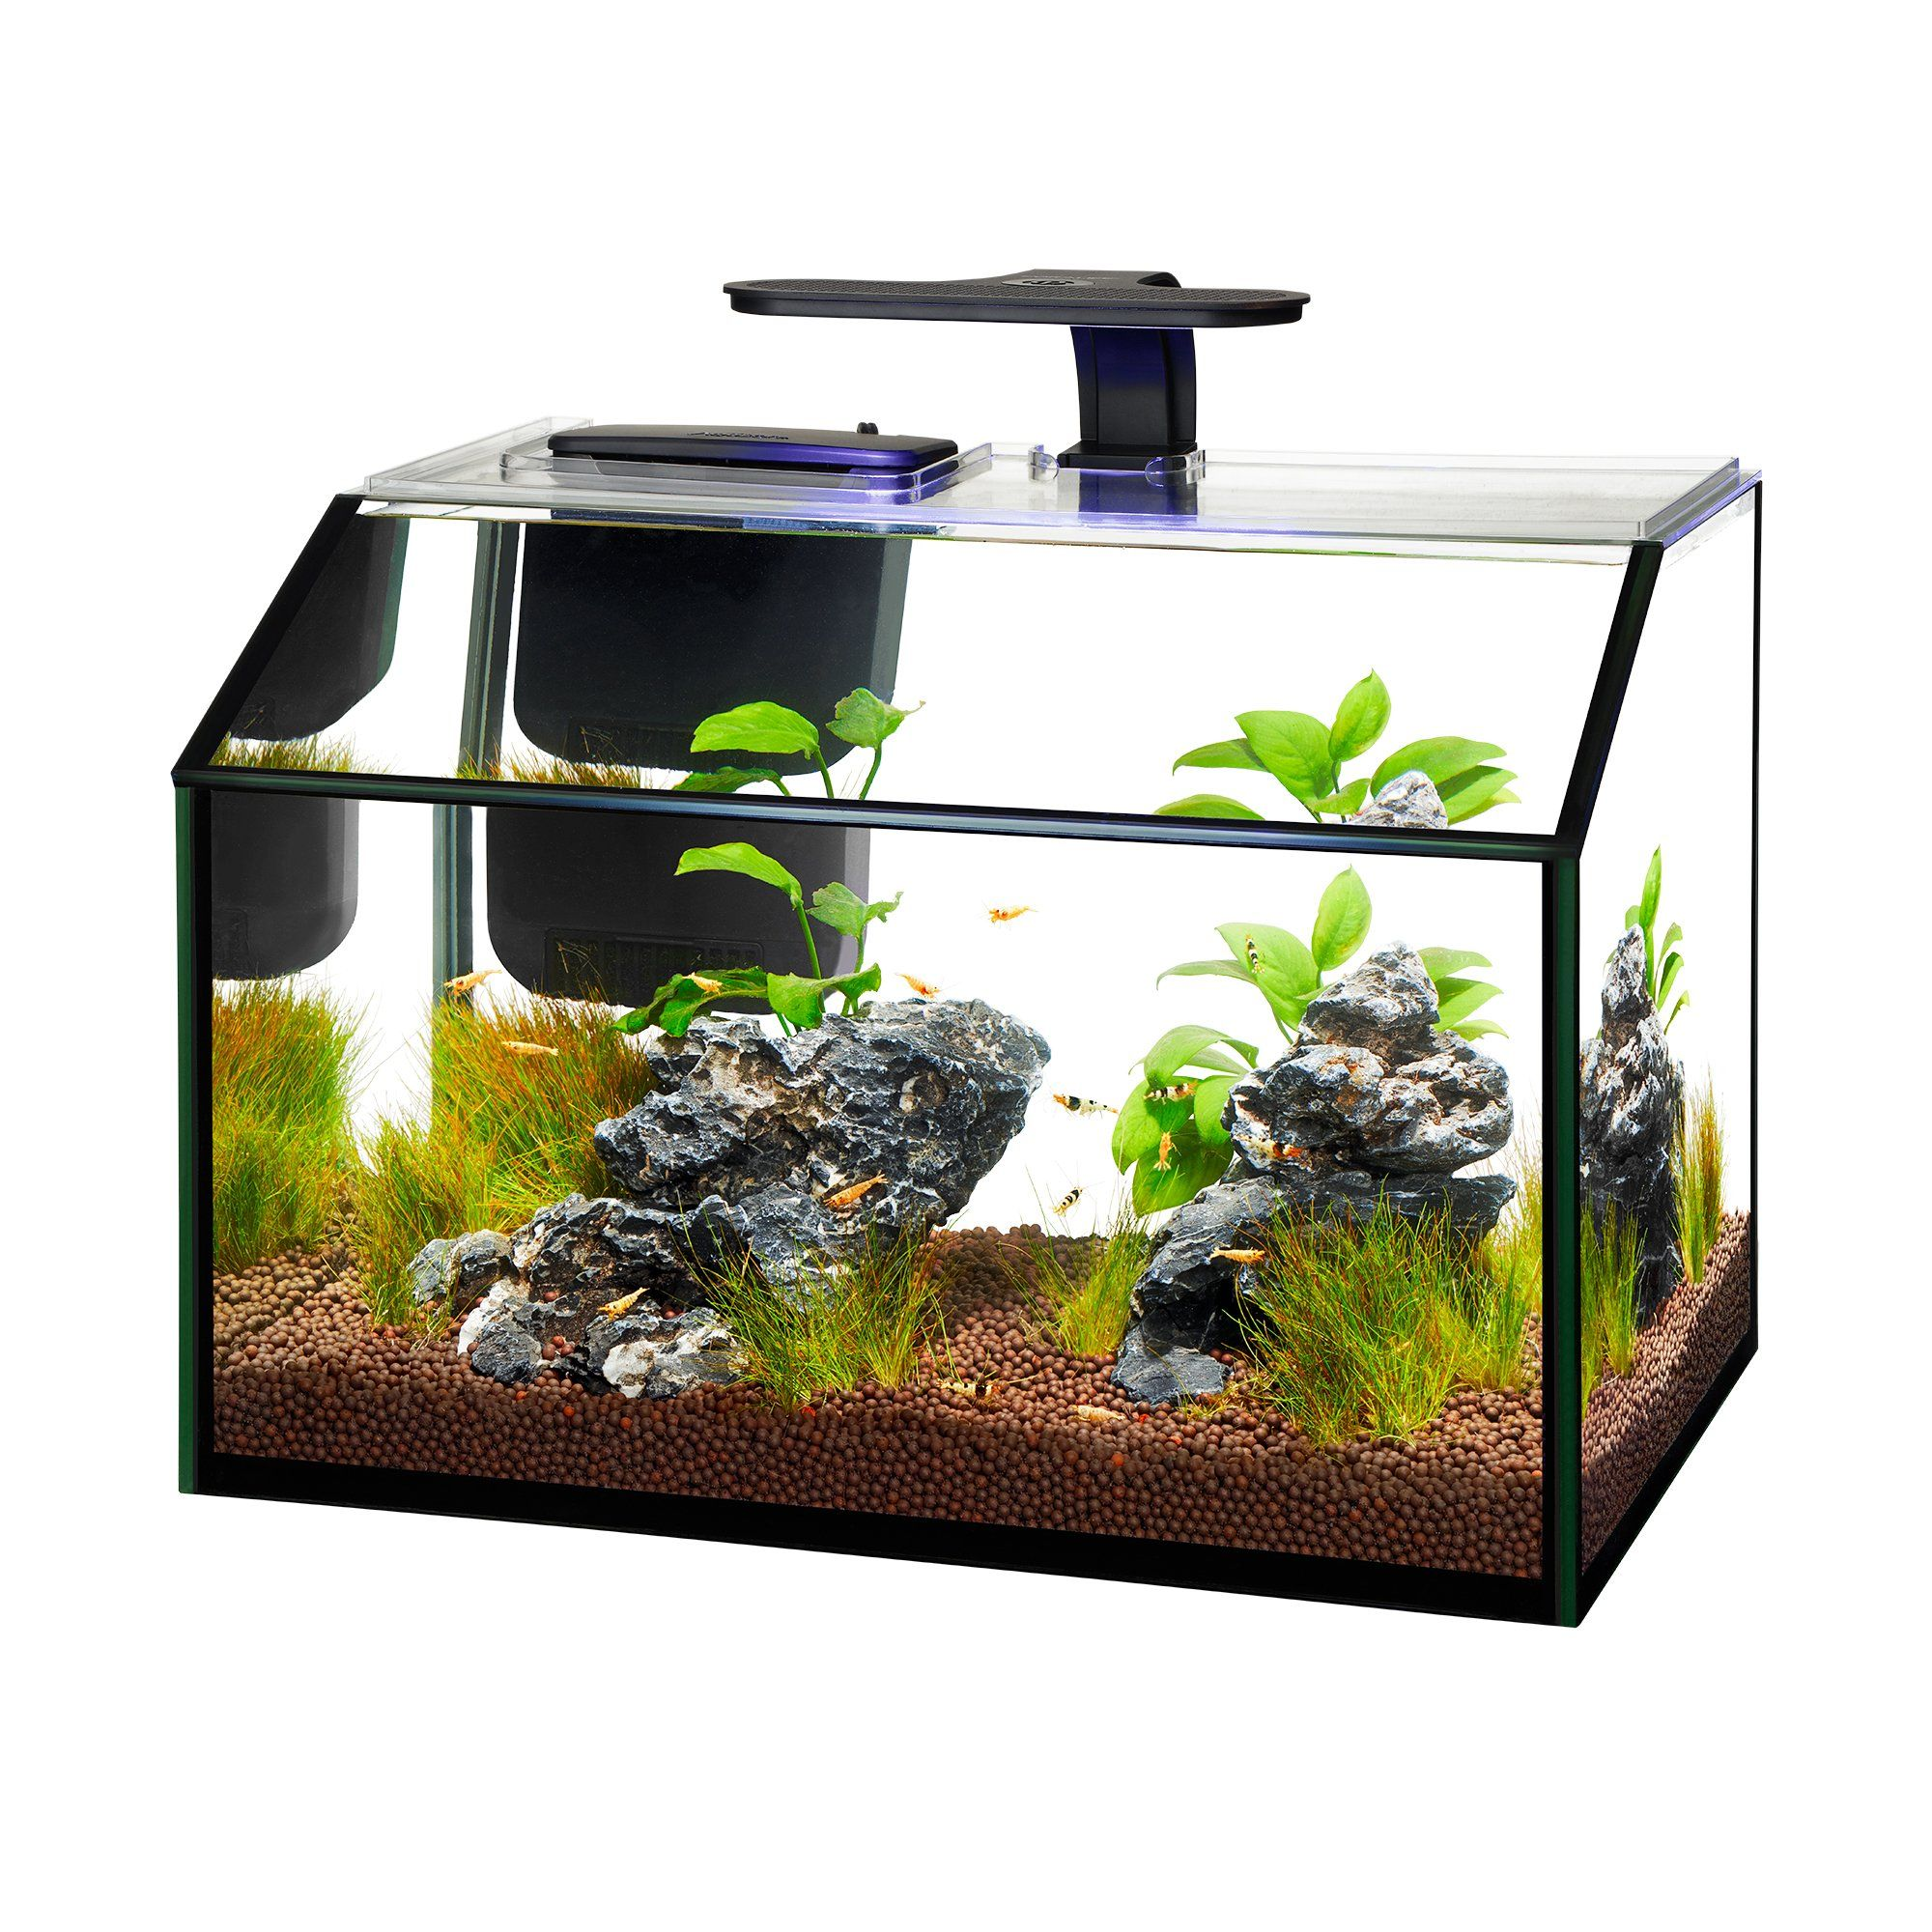 Aqueon LED 8.75 Gallon Shrimp Aquarium Kit | Petco ...